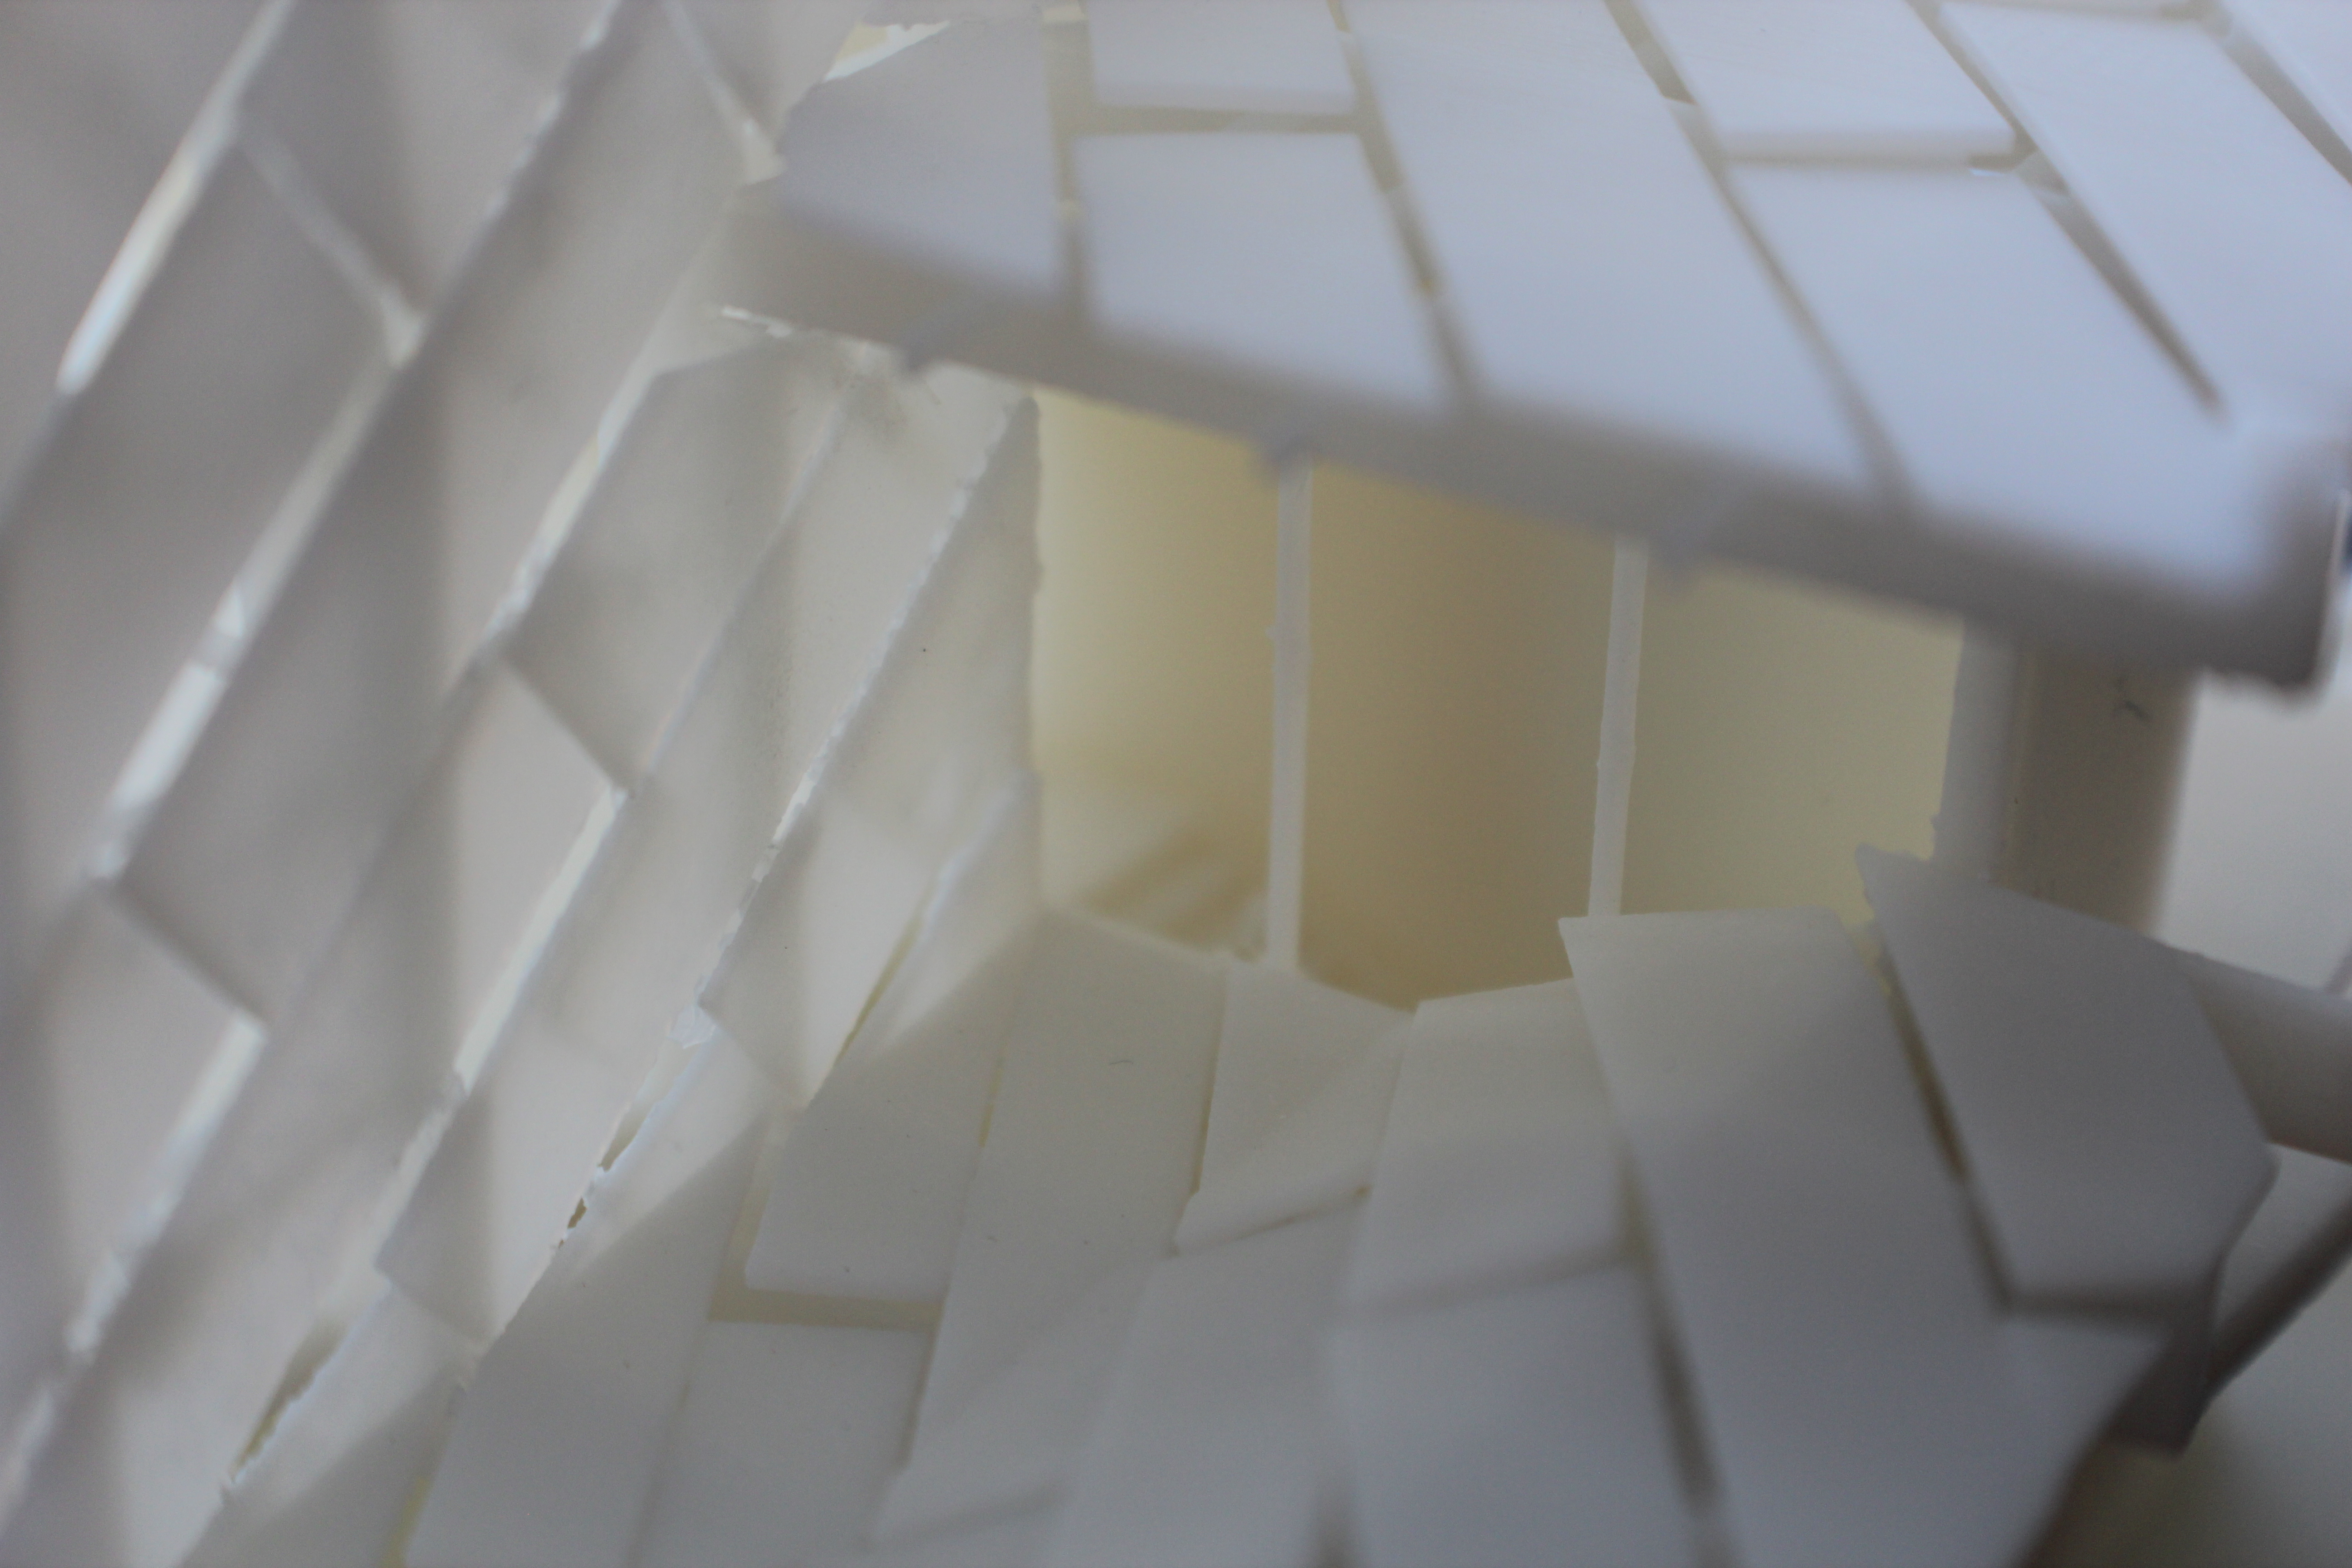 3D printed China House roof 3